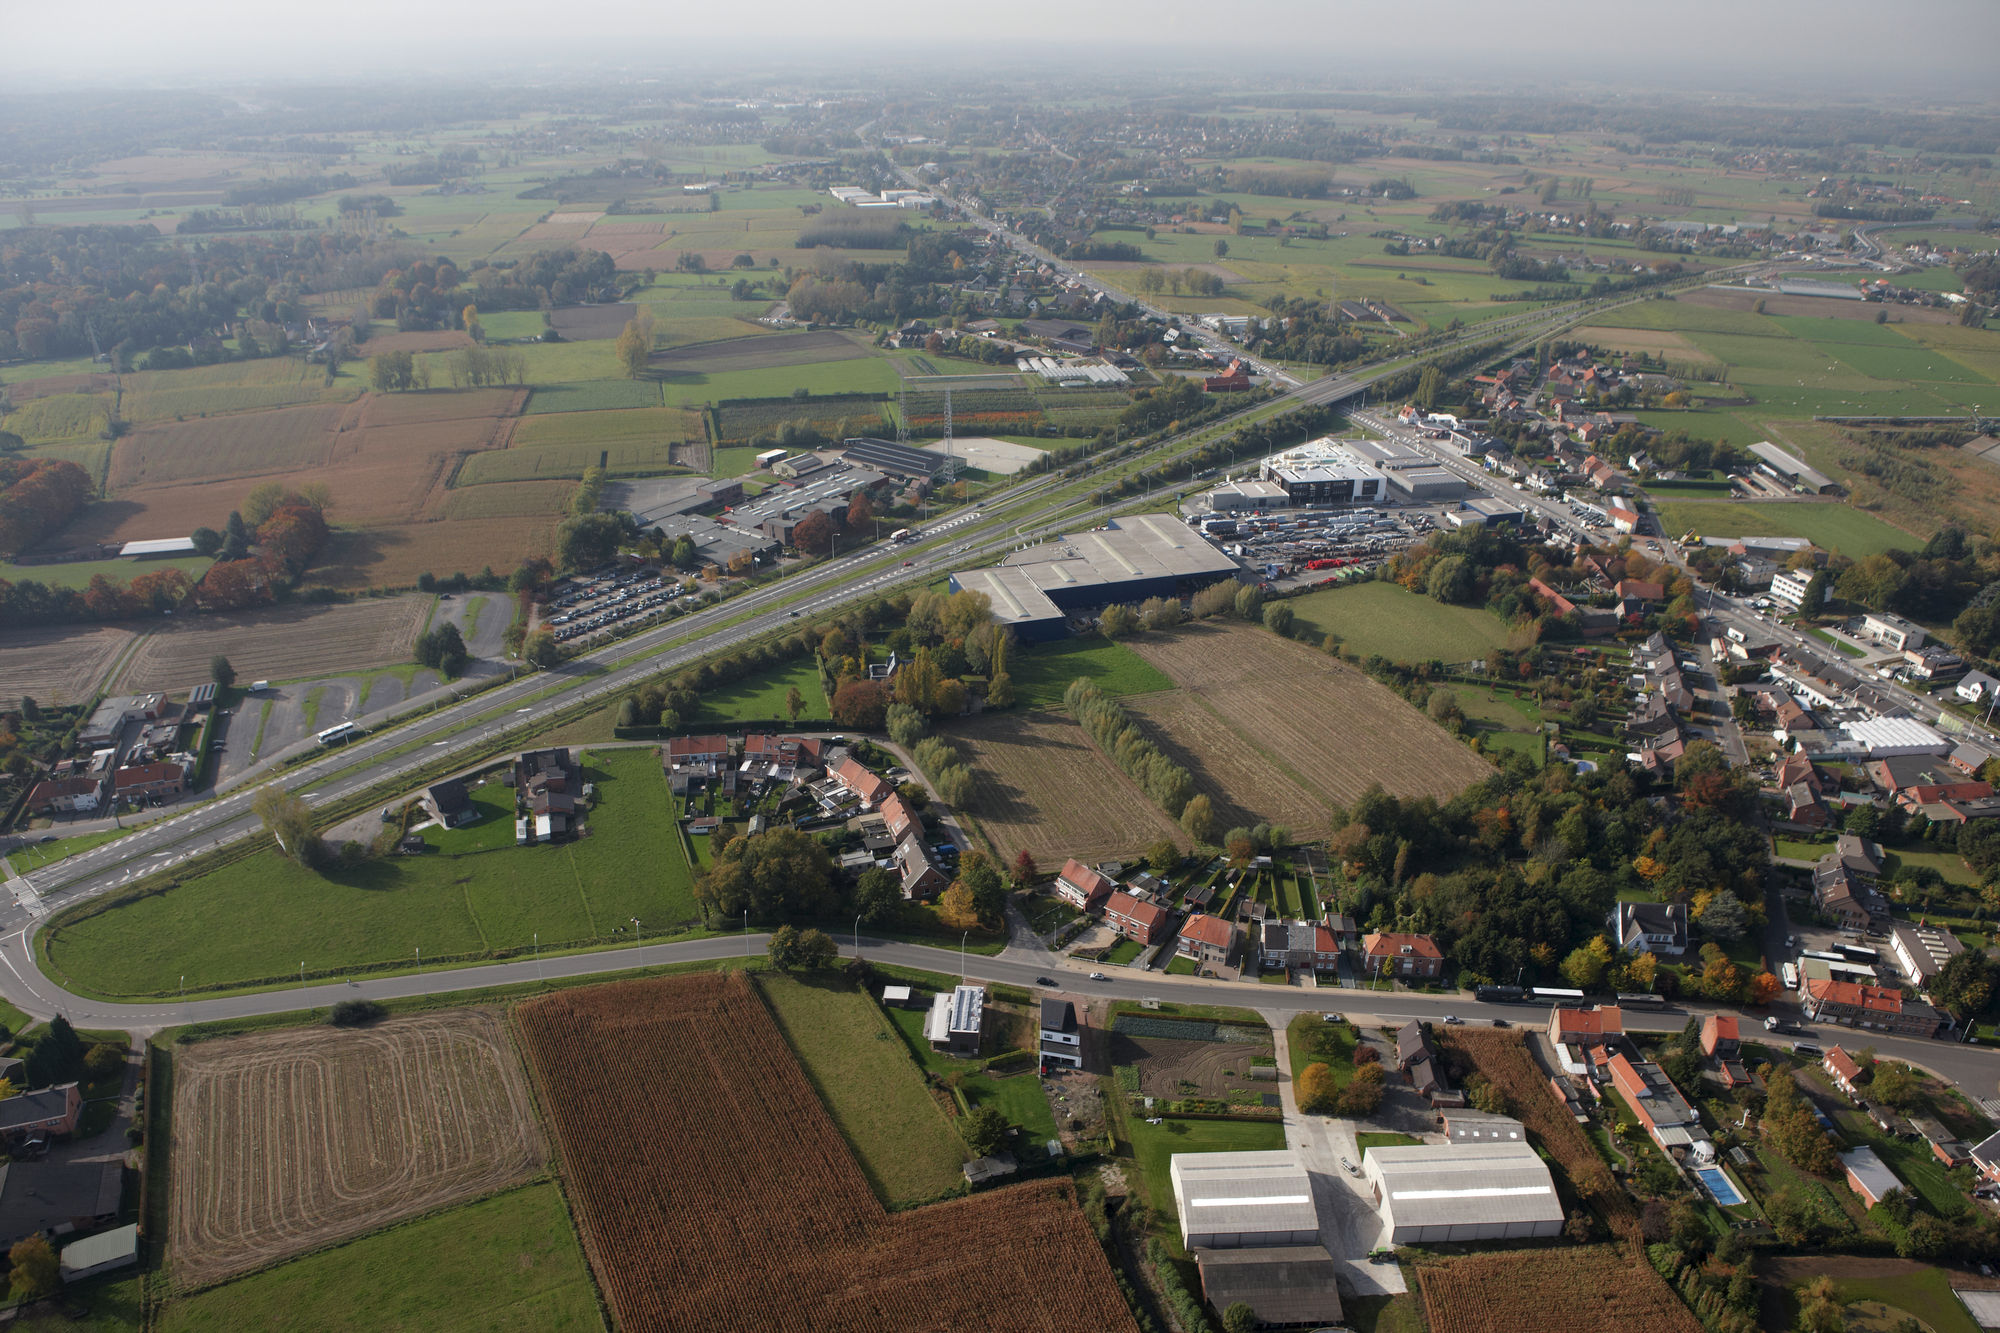 luchtfoto's